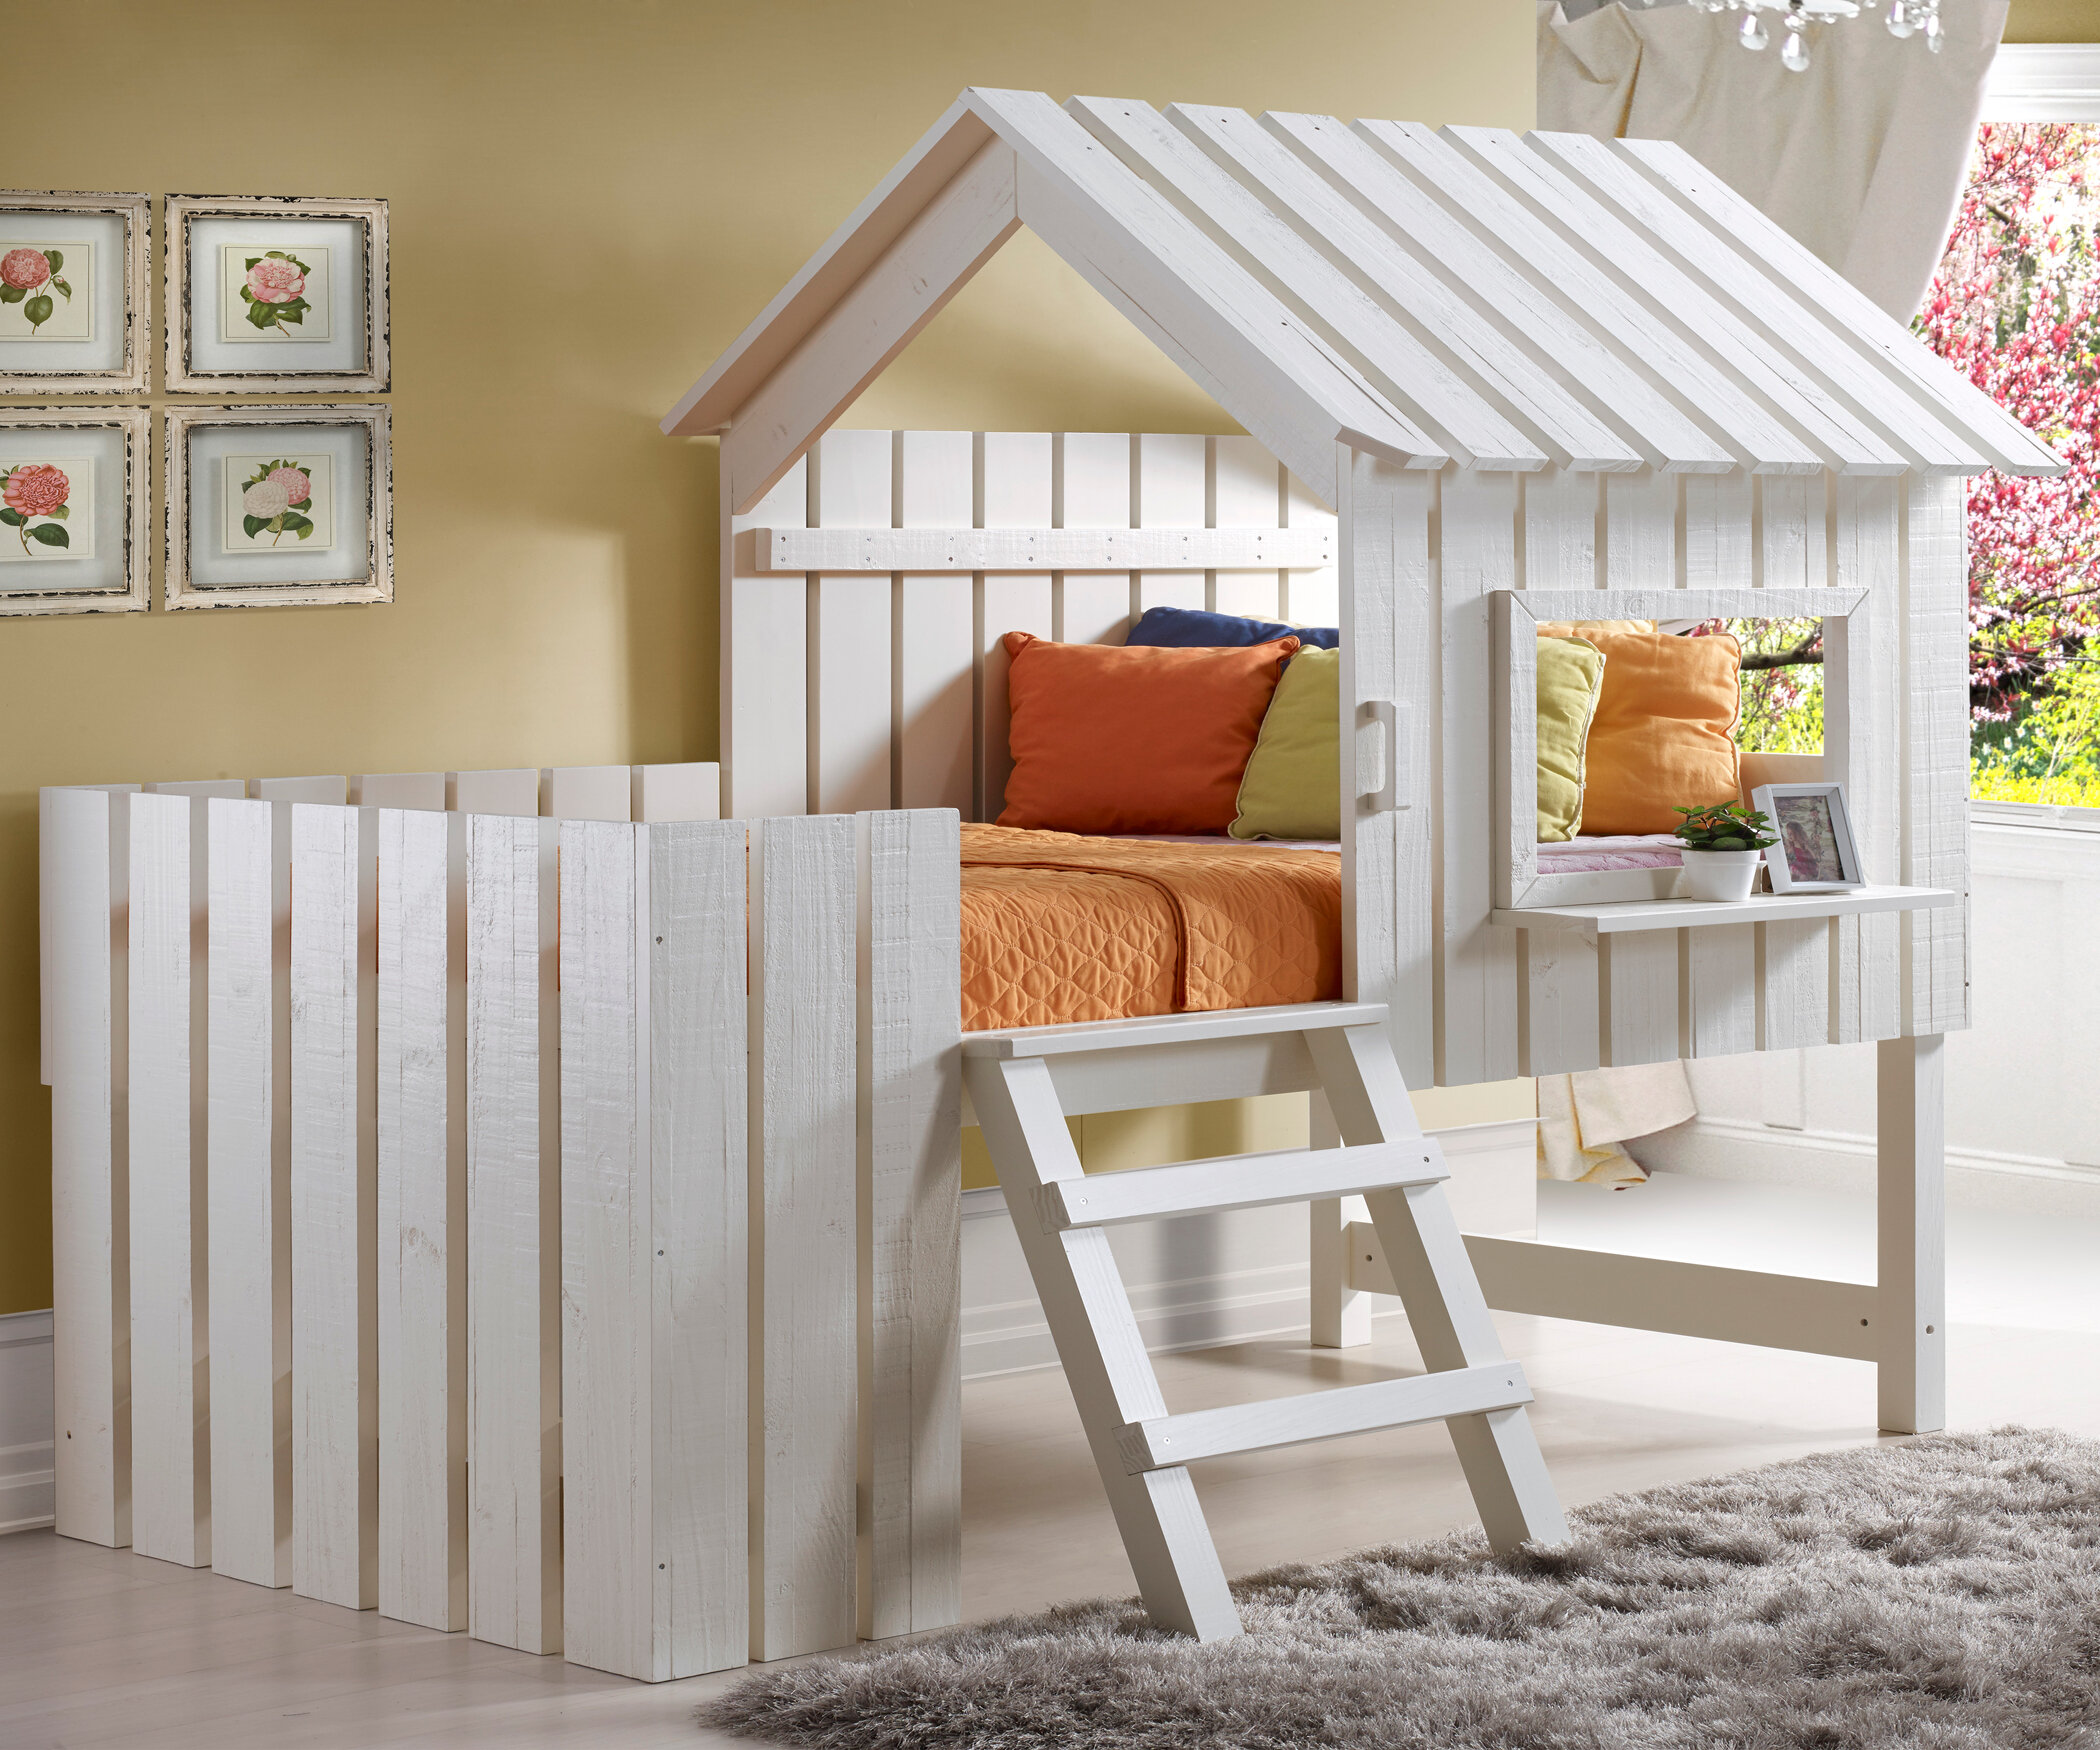 doesn wooden shaped l beds the s space with t ceiling bunk show features far on but there it top bunkbed low saving photo desk above a